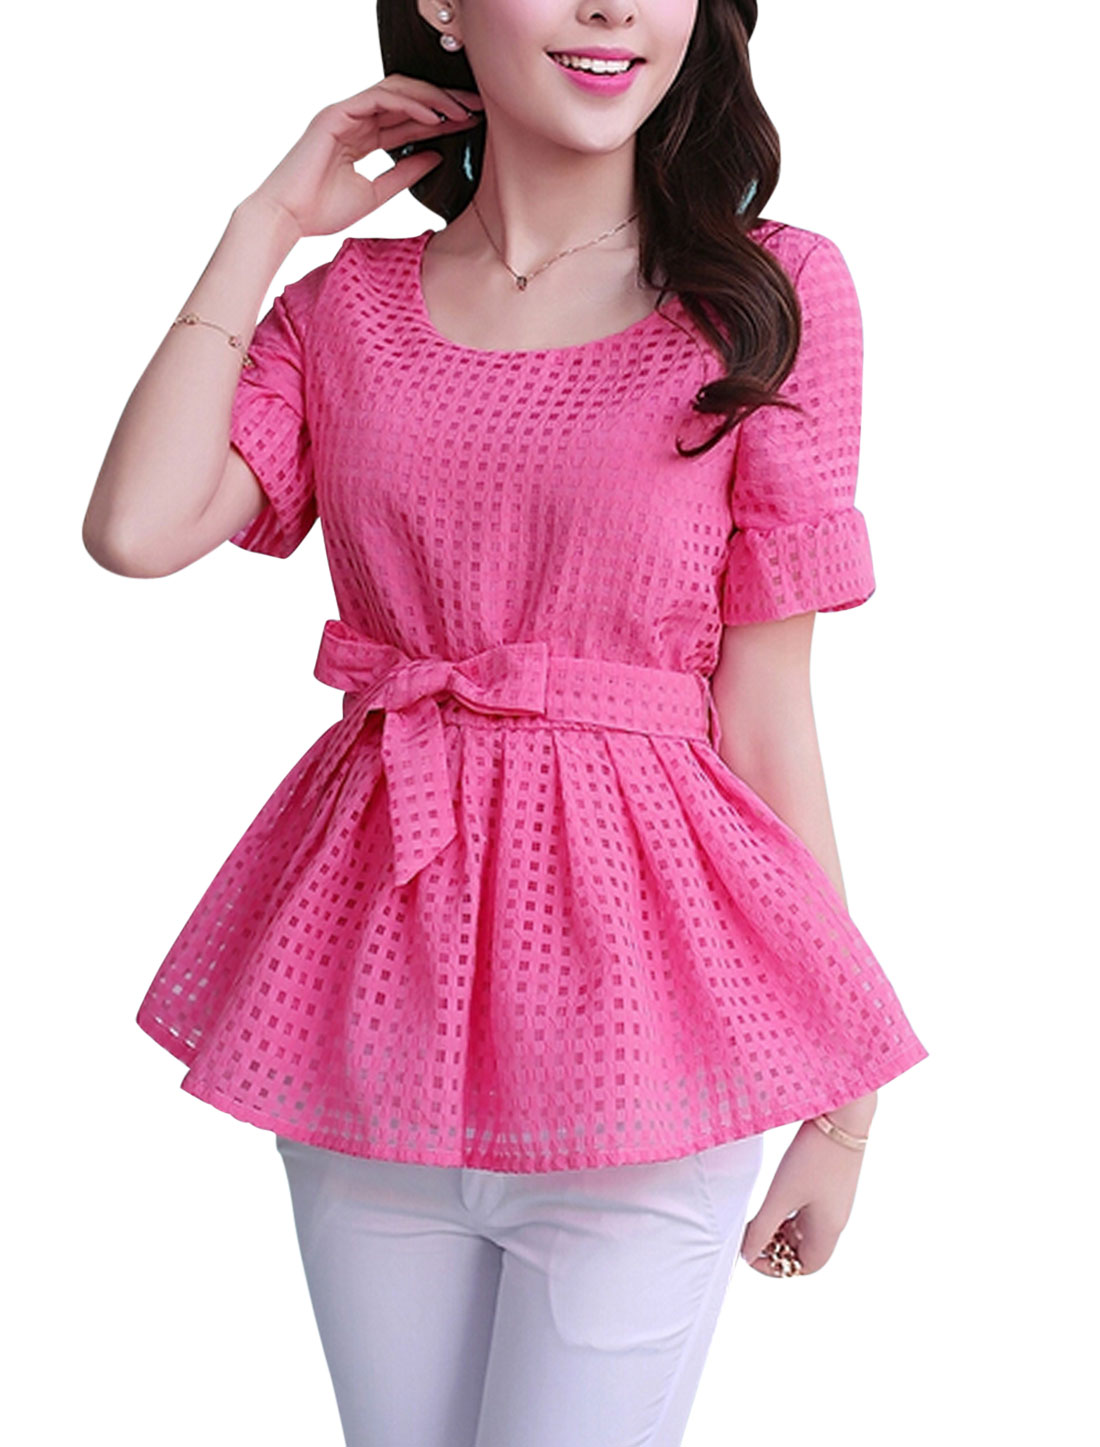 Lady Round Neck Plaids Design Cozy Fit Blouse w Belt Fuchsia S